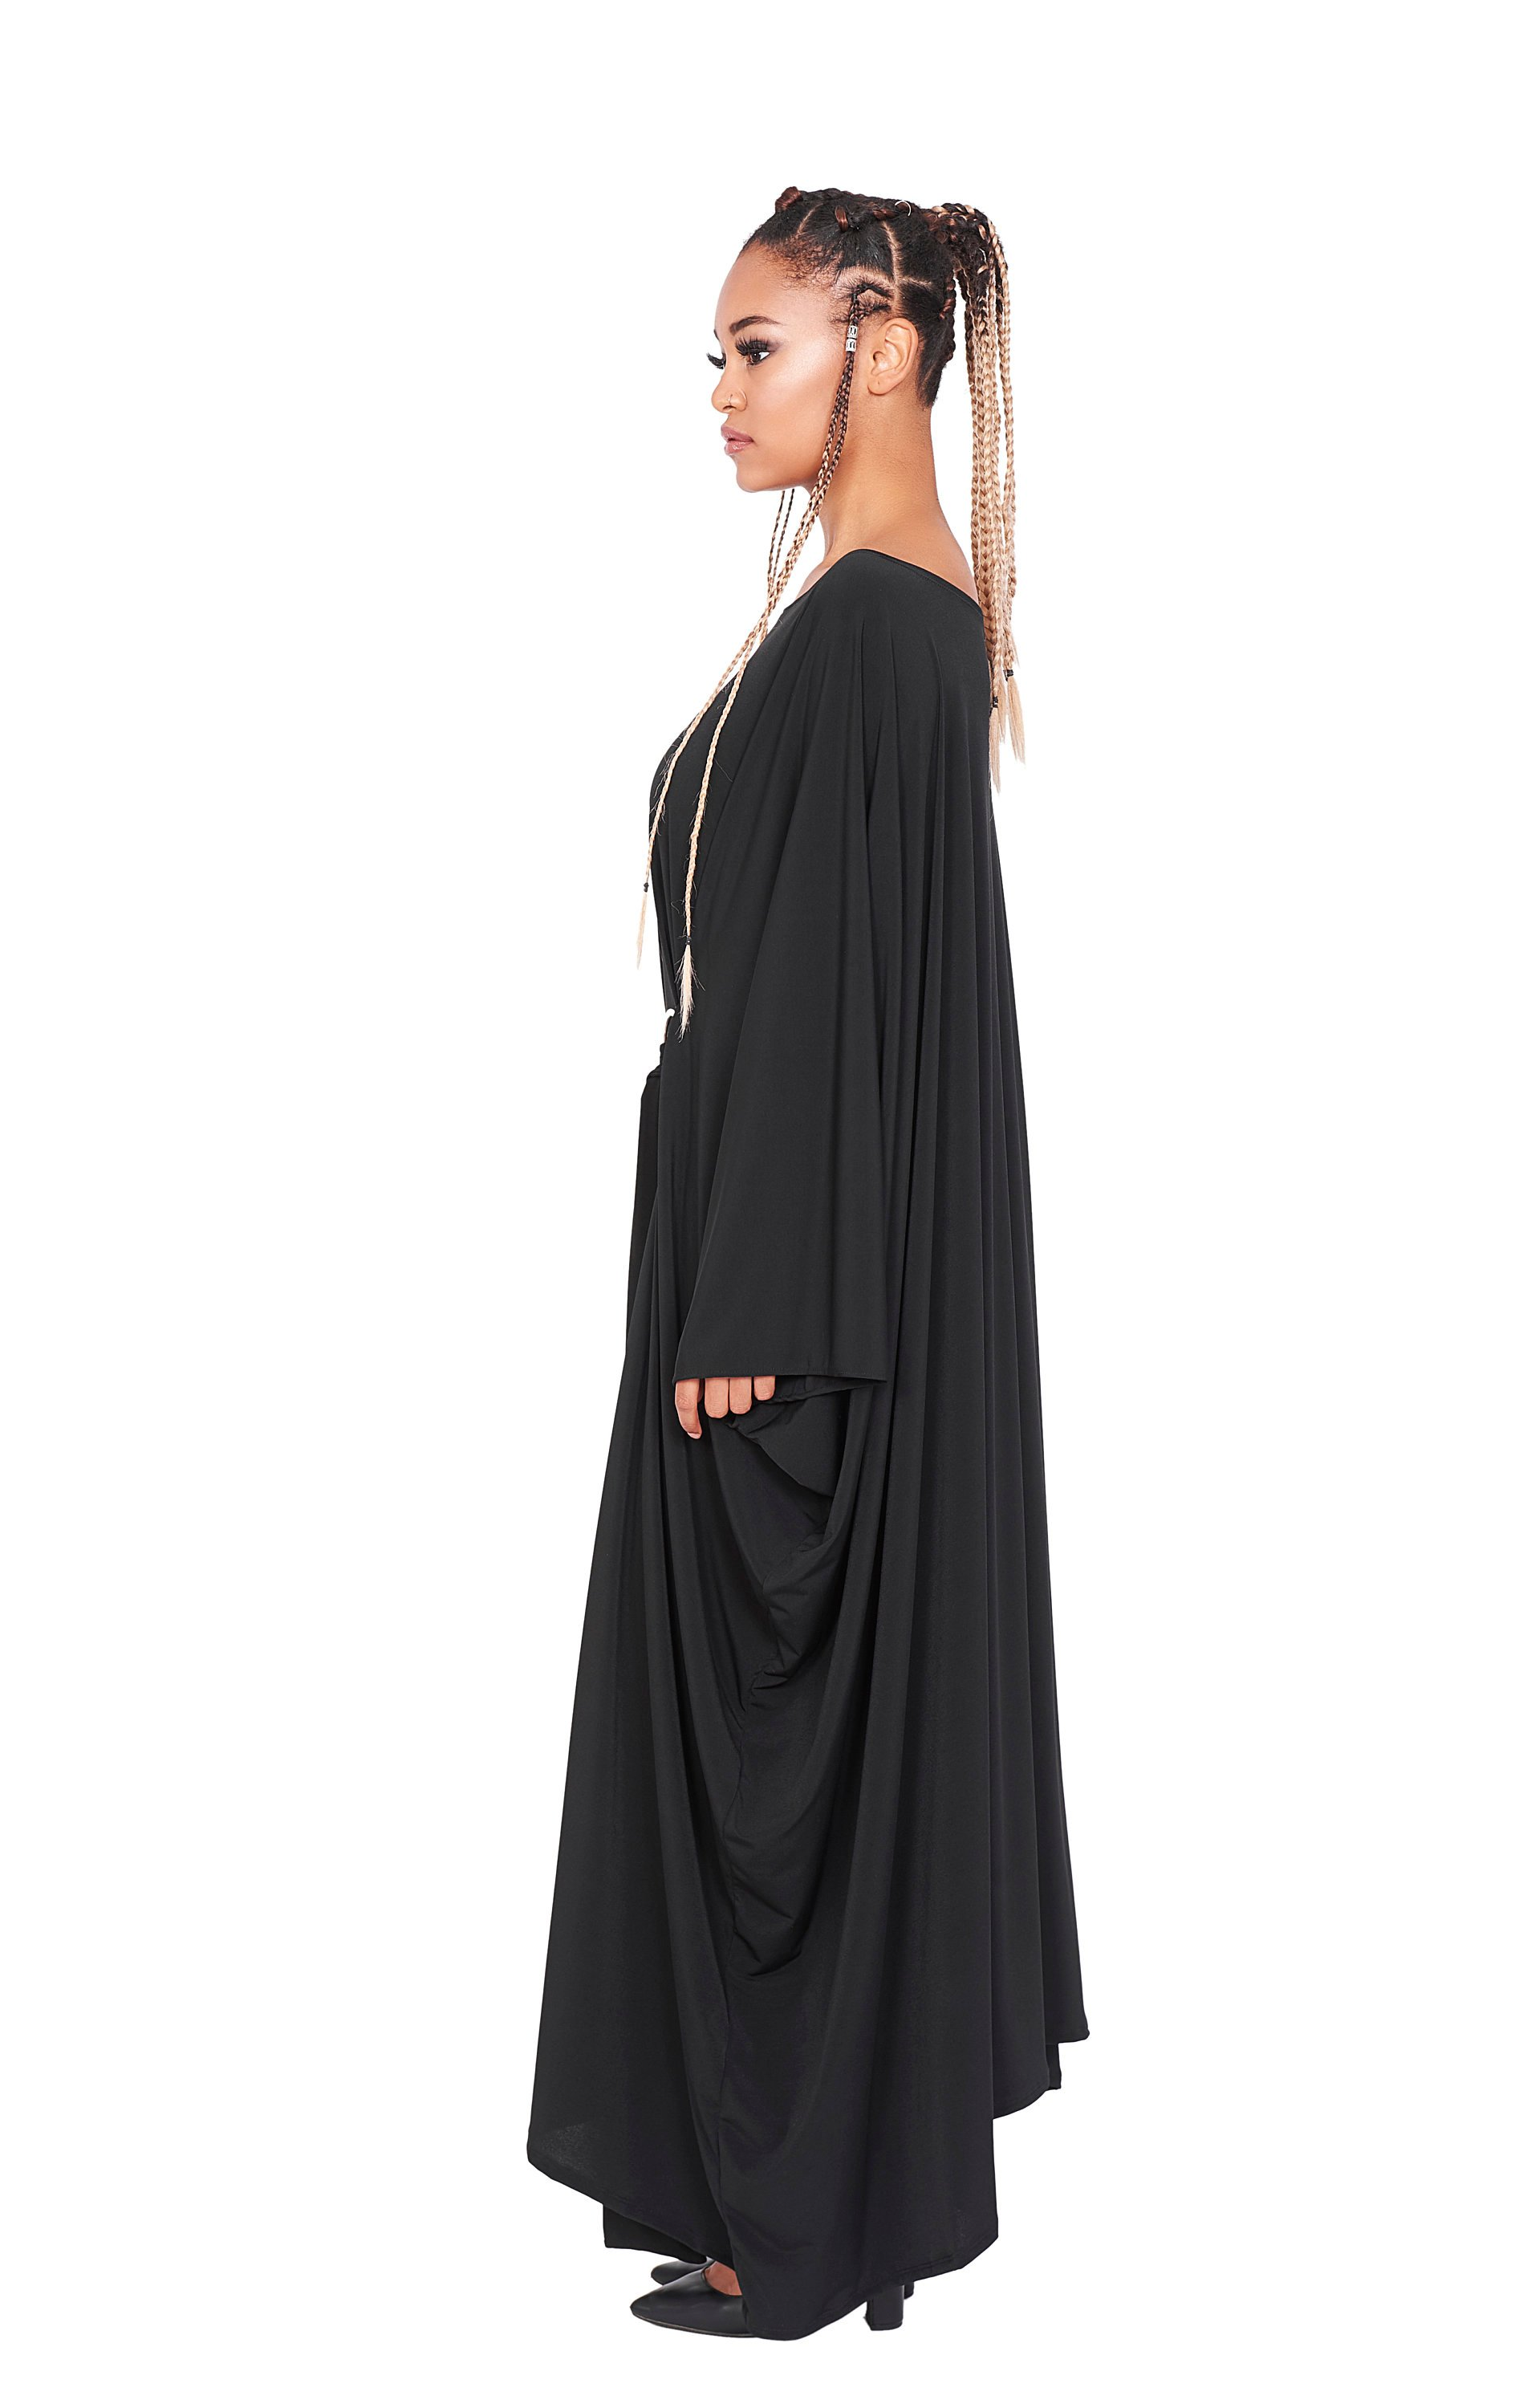 4a7580459b Plus Size Maxi Dress, Long Black Maxi Dress, Oversized Dress, Maternity  Clothing,